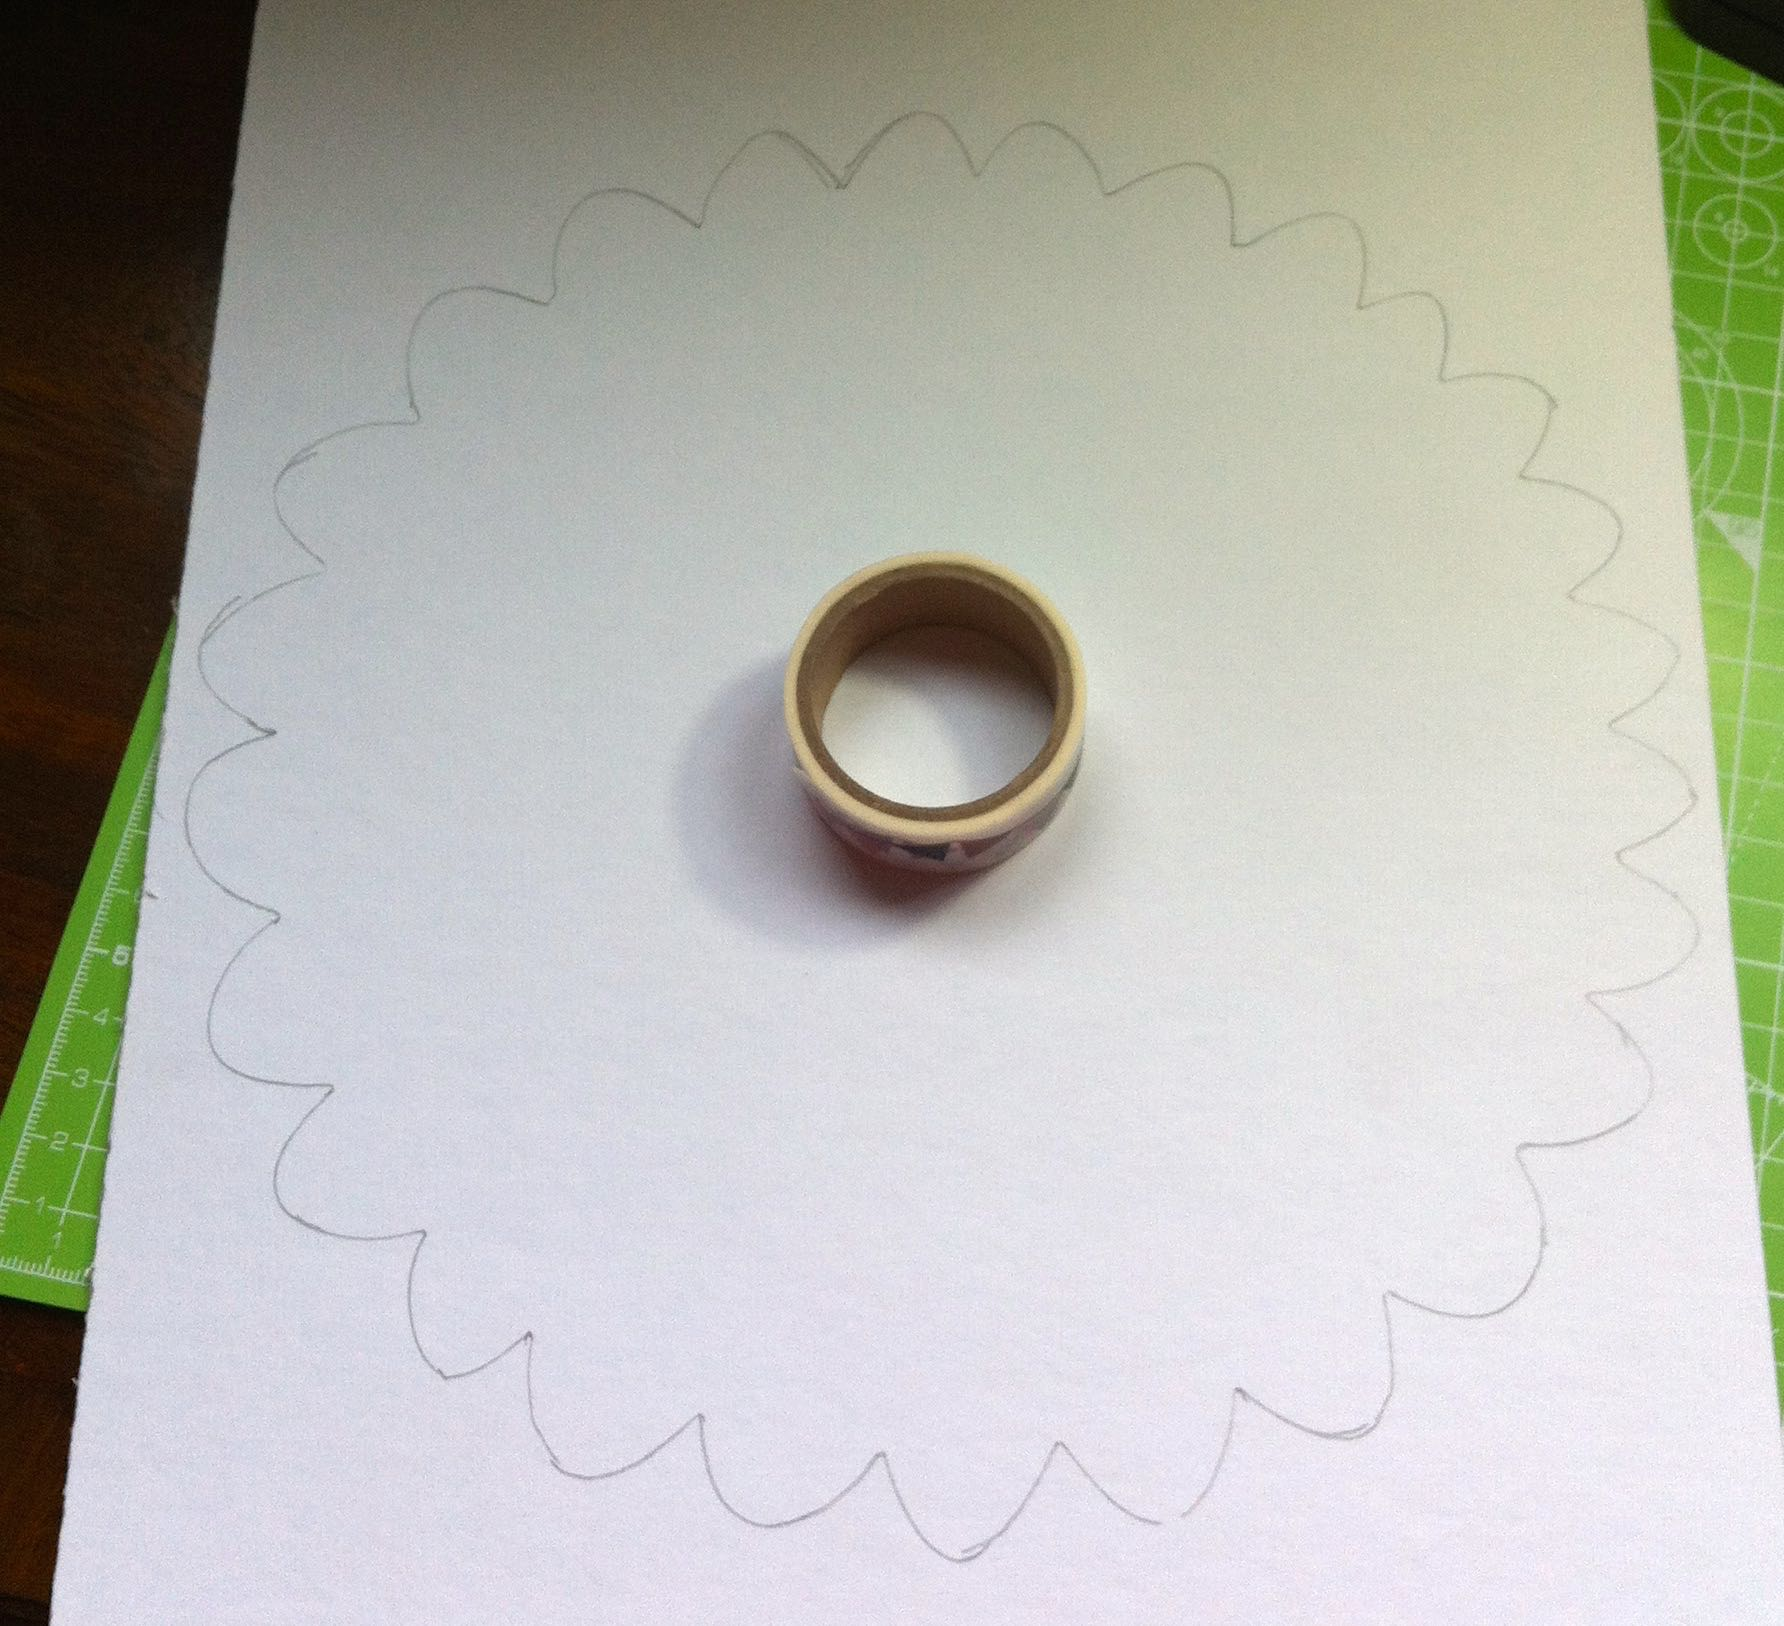 Making a flower shaped template from card and using a roll of washi tape for the centre